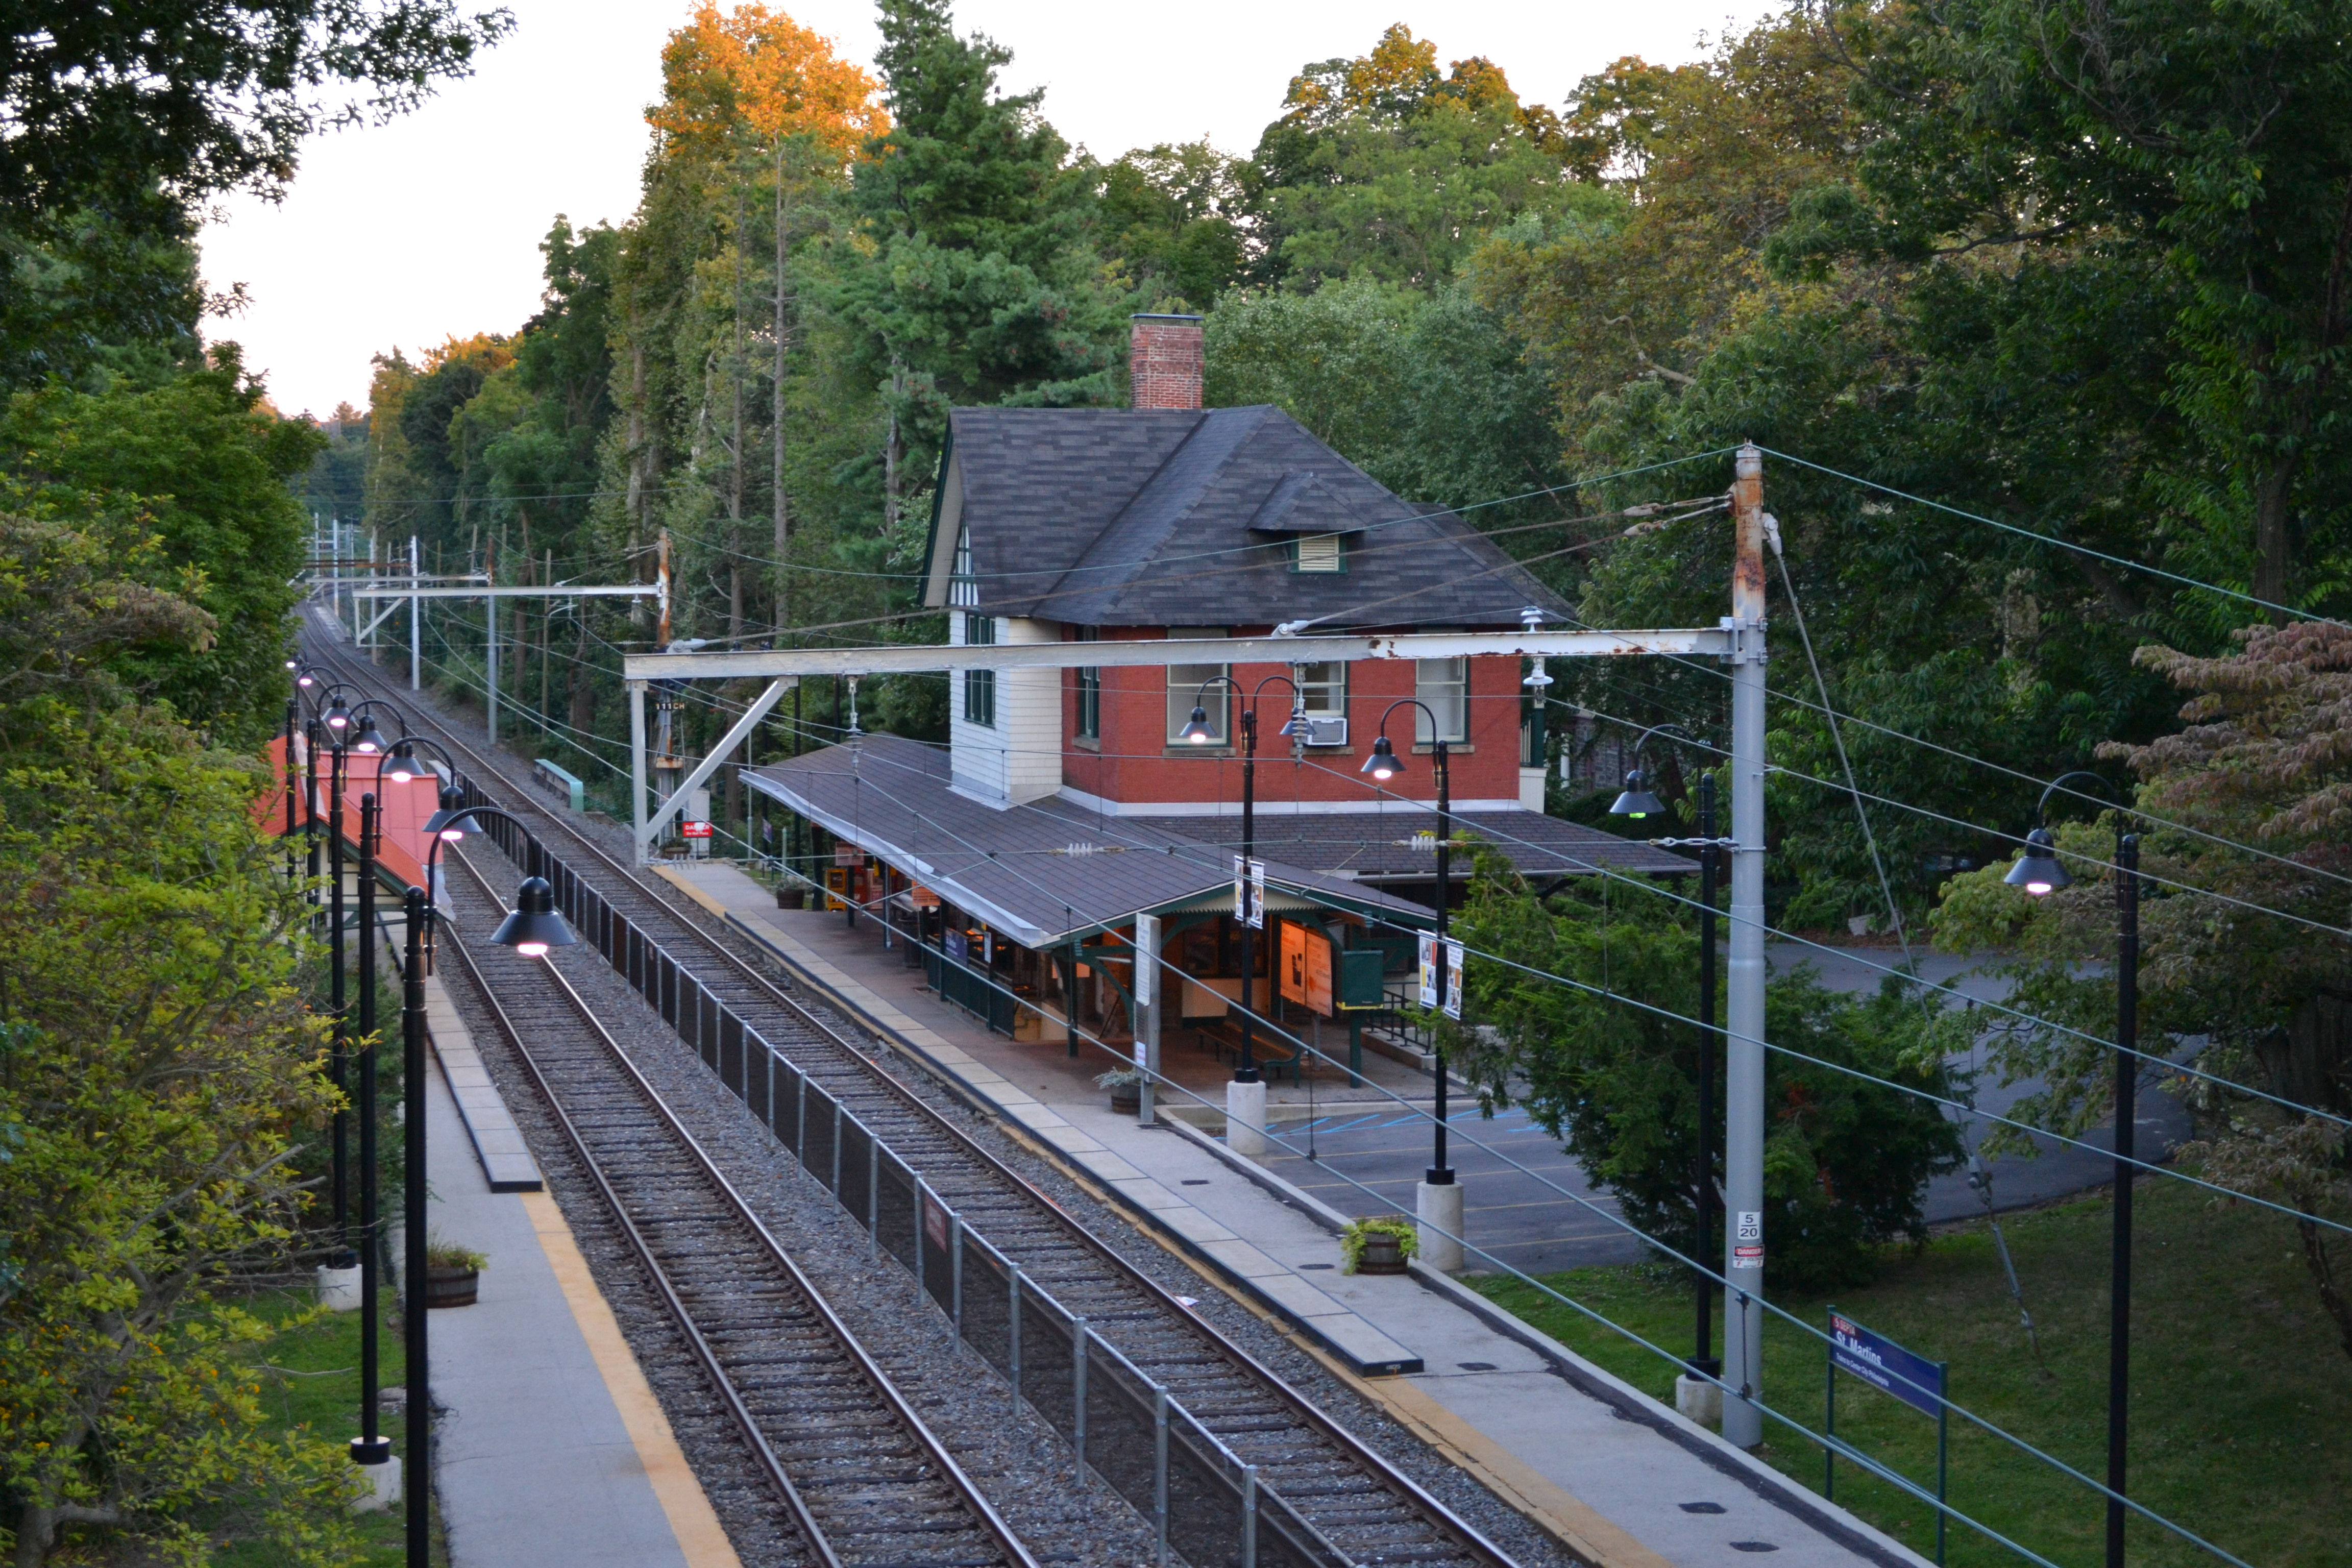 The new bridge will have design elements that match SEPTA's St. Martin Station